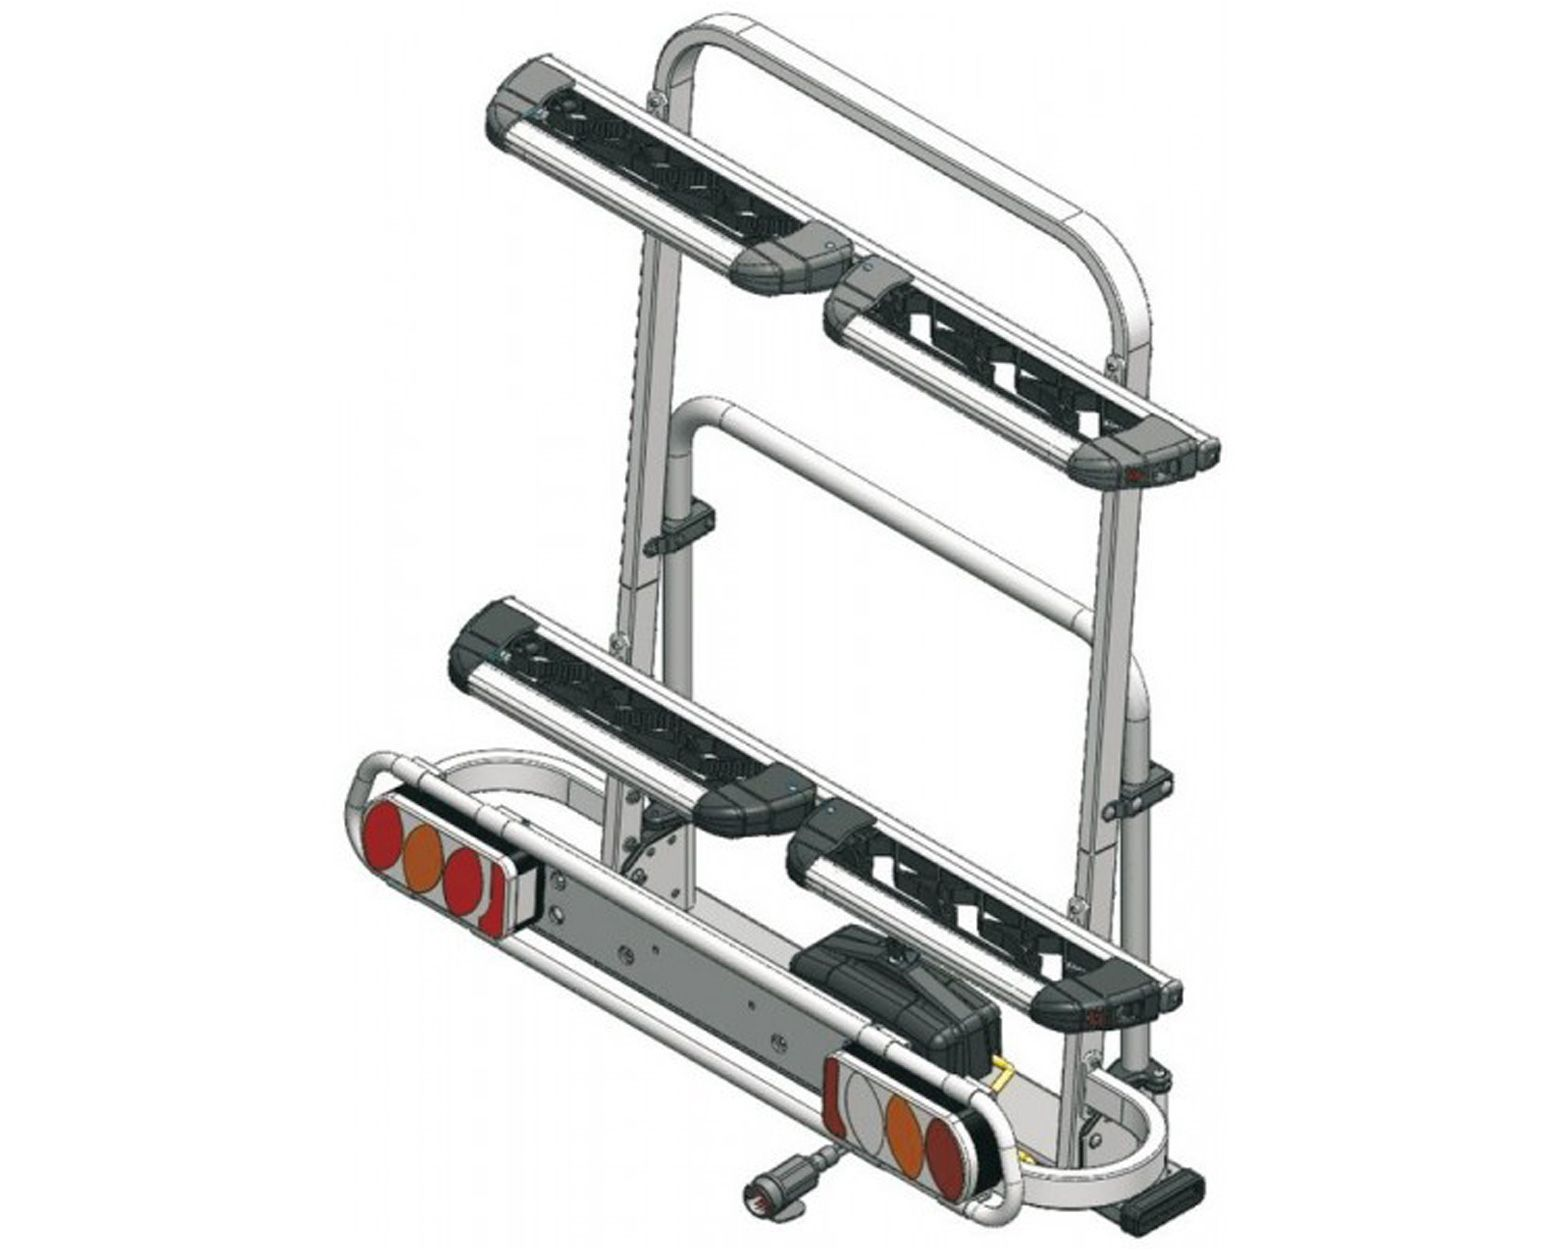 BICI Exclusive Ski & Board Deluxe Rear rack for 6 pairs